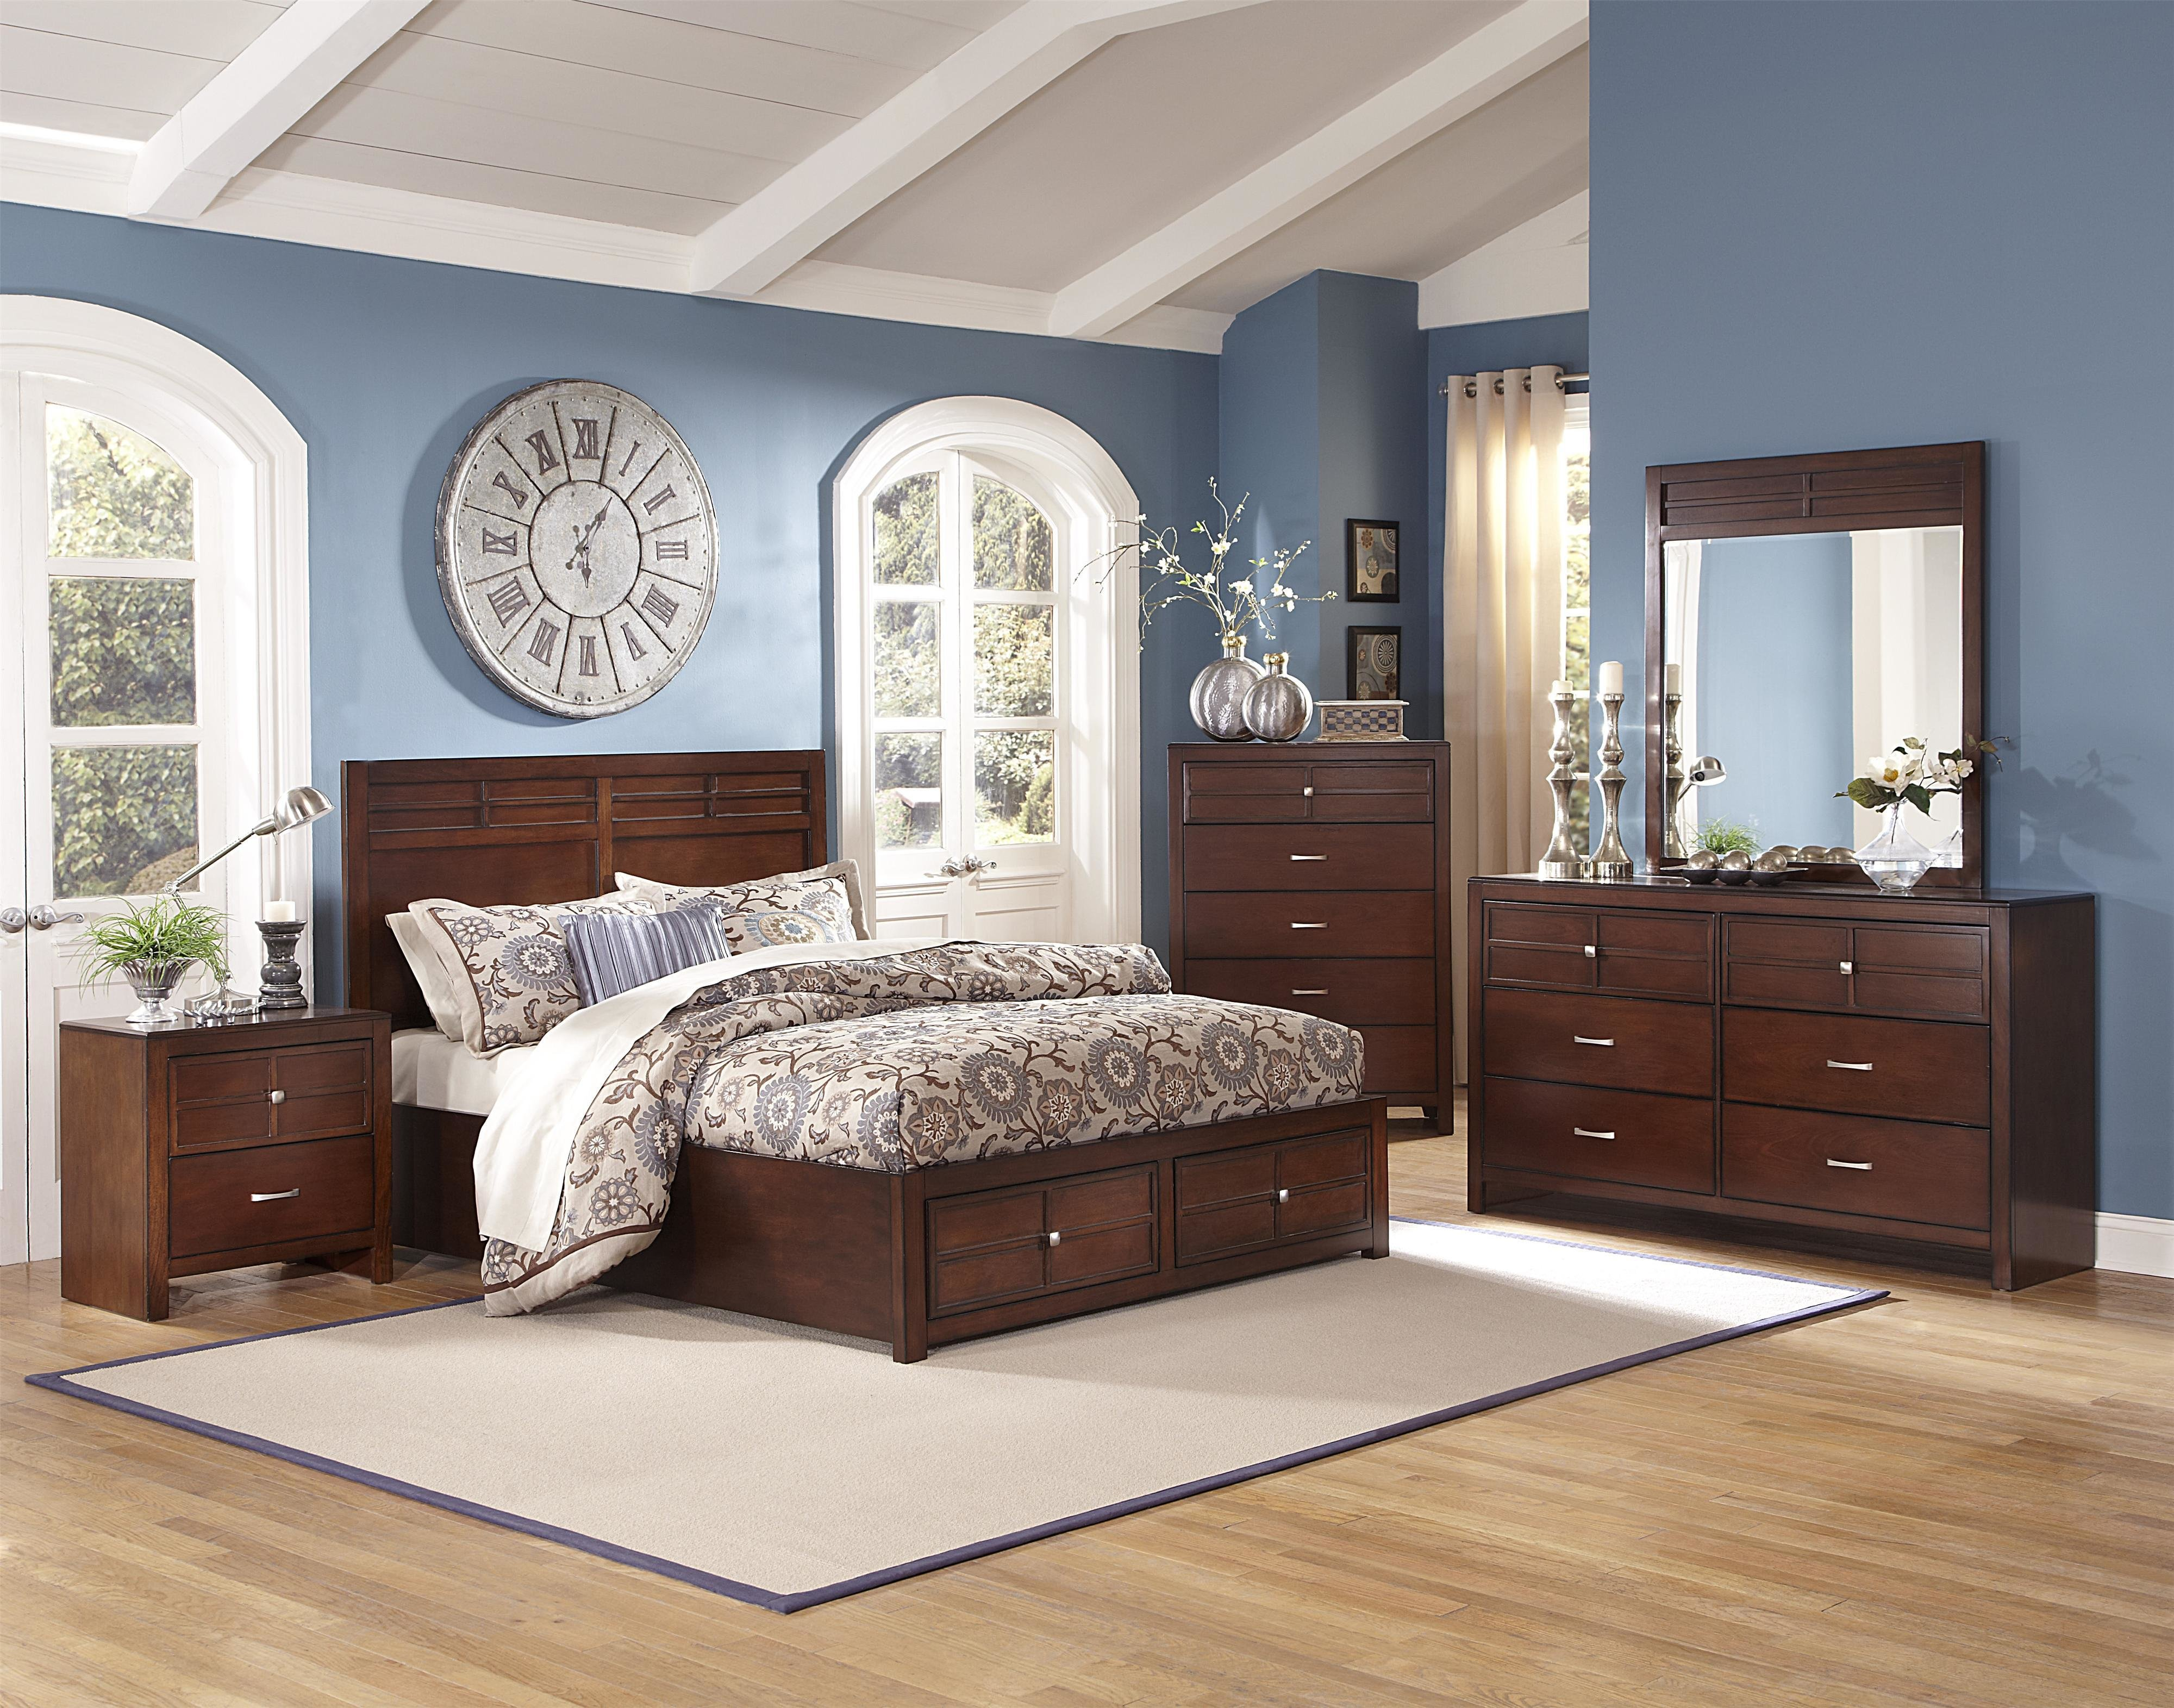 Best New Classic Kensington 4 Pc Panel Storage Bedroom Set In With Pictures